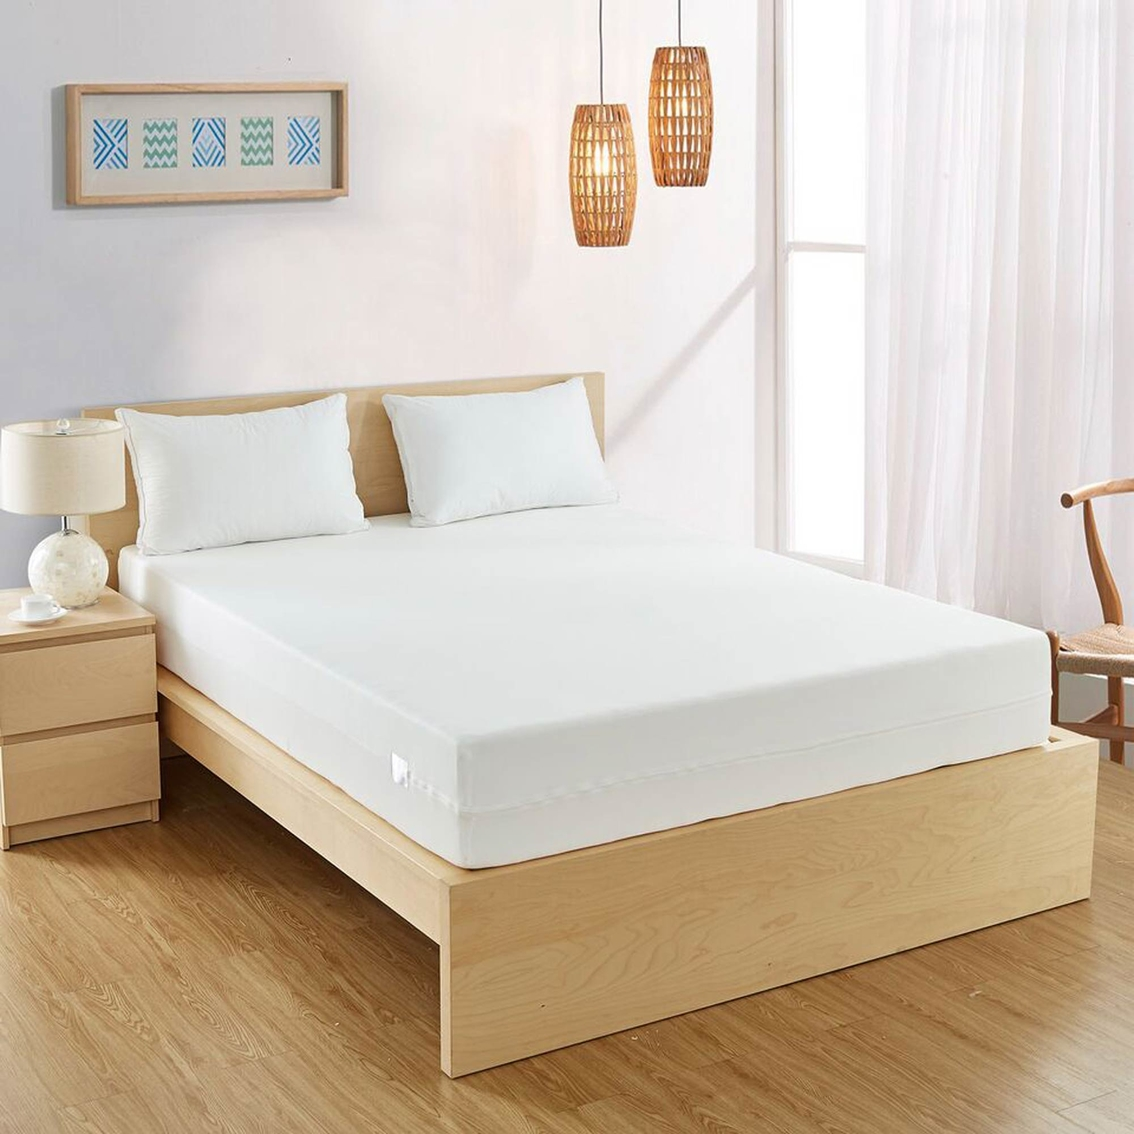 Bed Bug Protection Cover The Bedbug Solution Hybrid Mattress Cover Mattress Pads